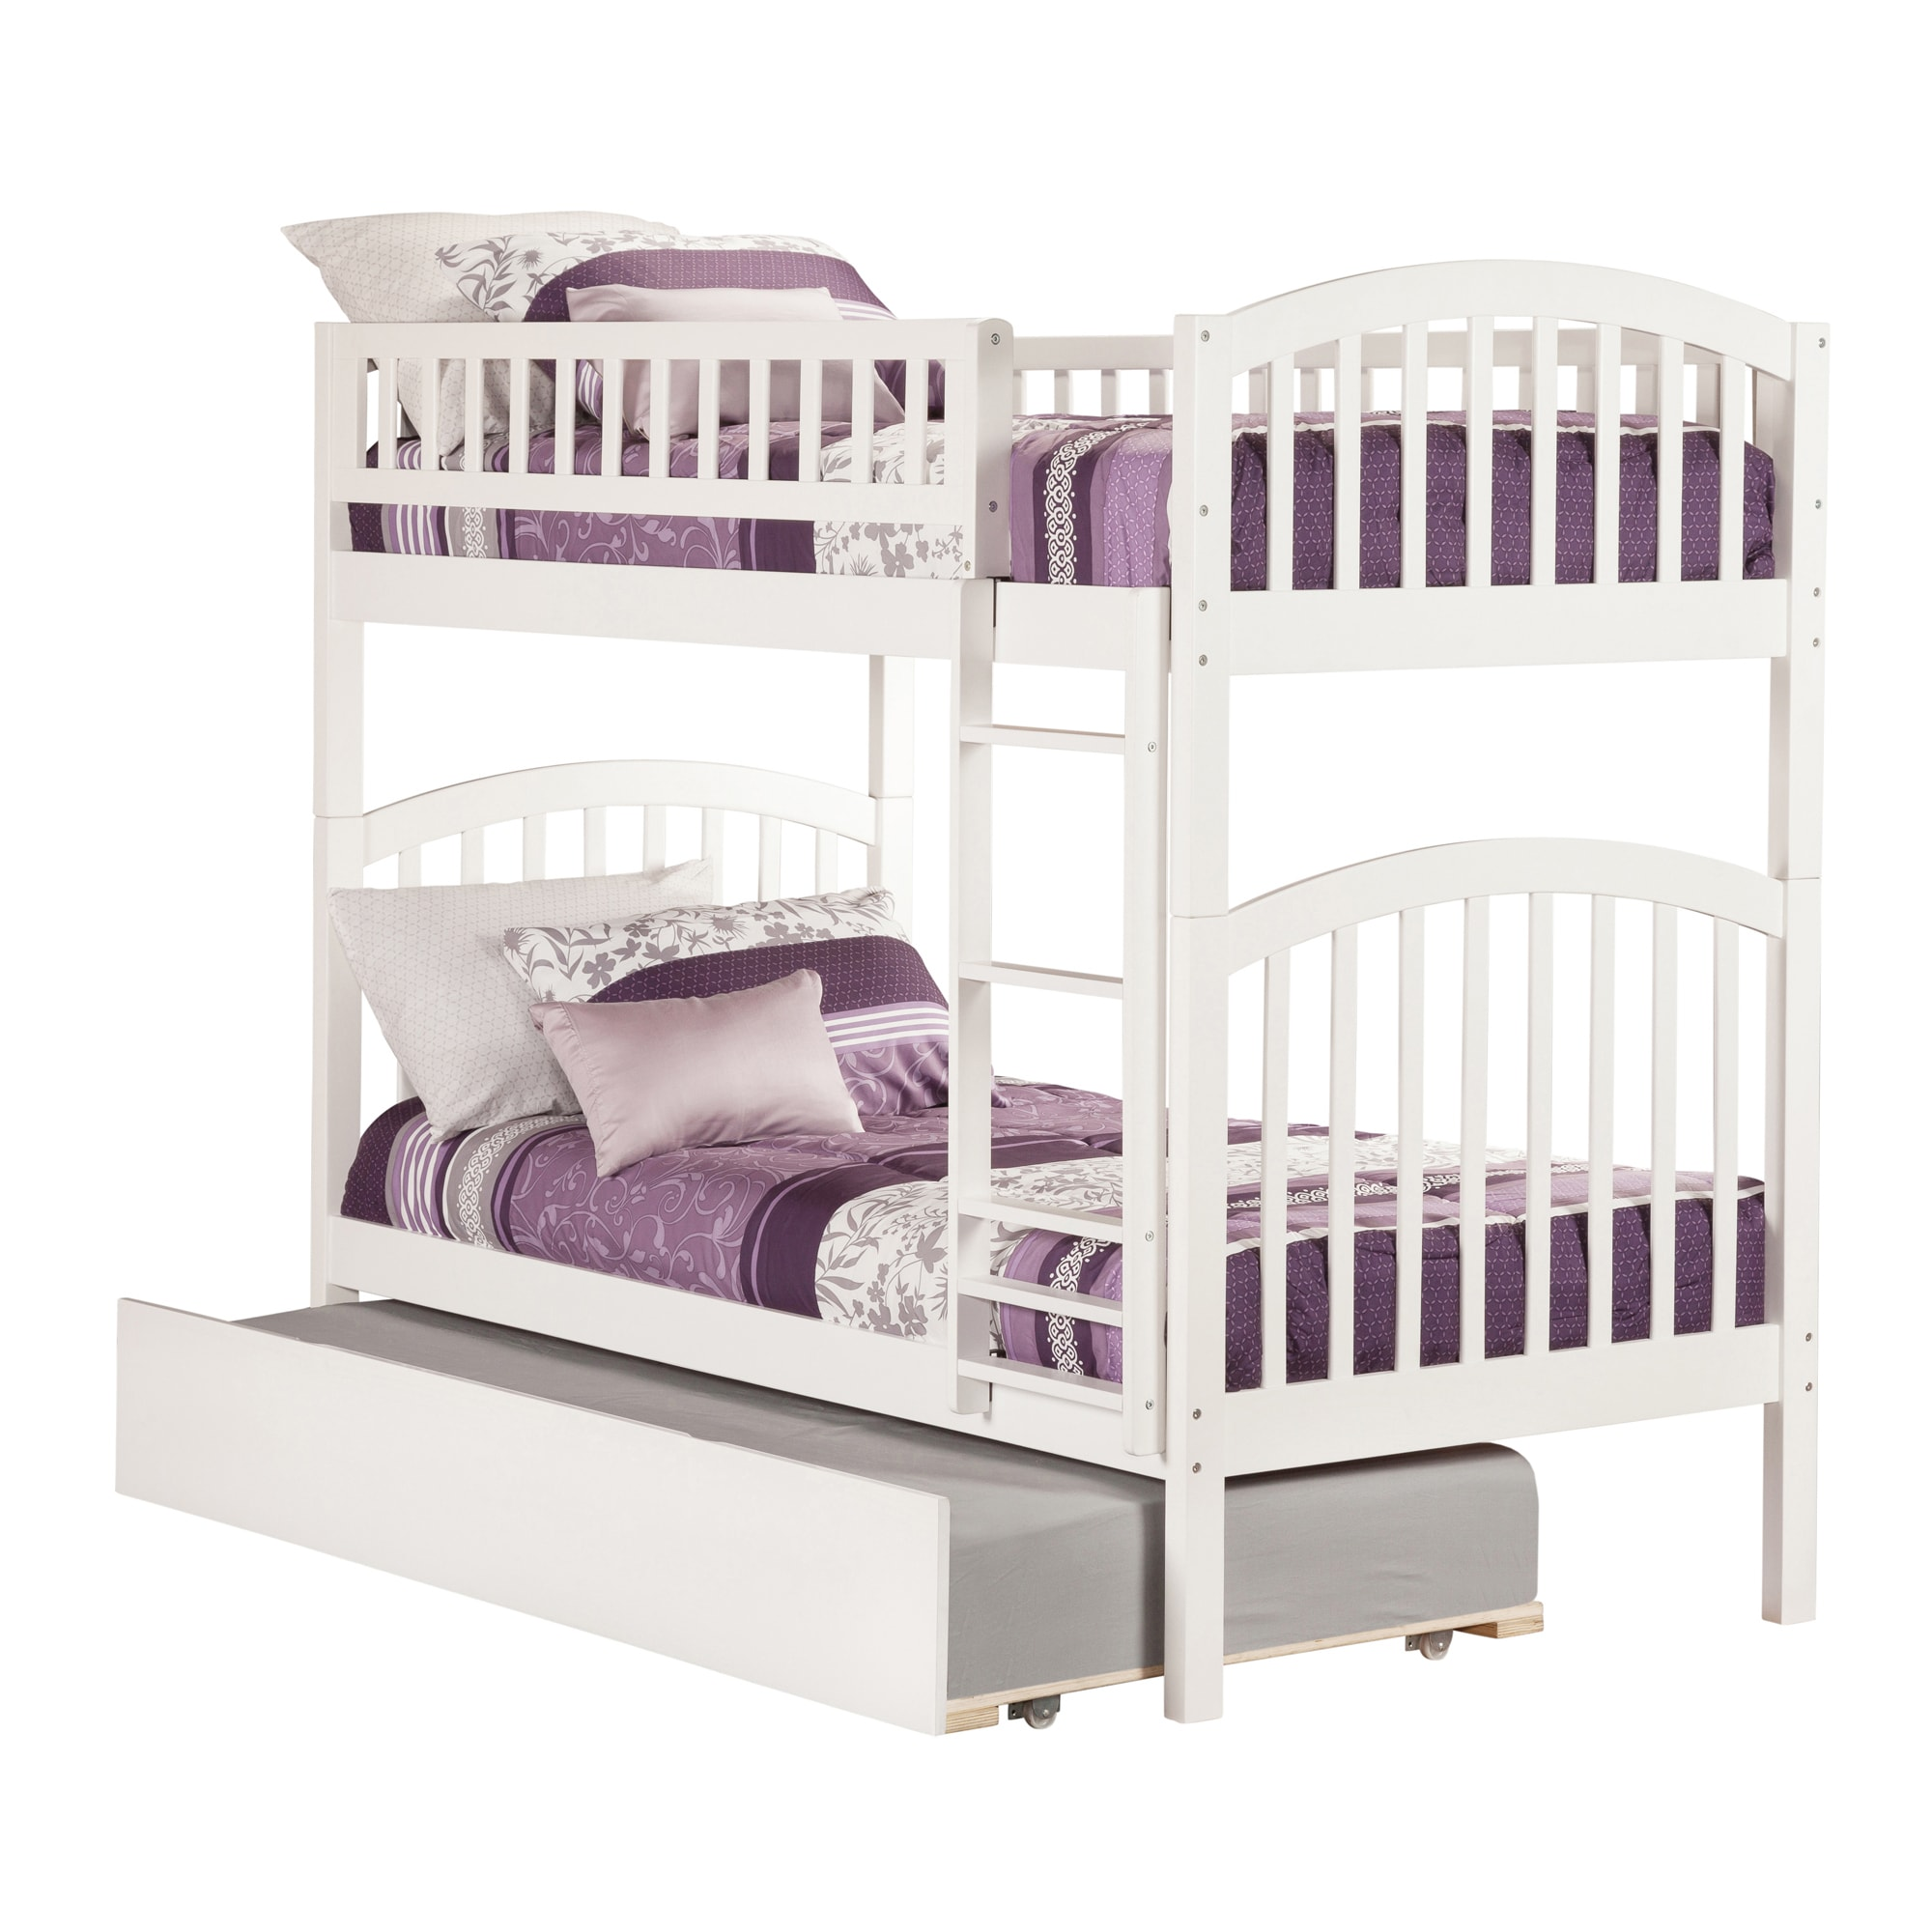 Atlantic Furniture Atlantic Kids' Richland White Twin-over-twin Bunk Bed with Urban Trundle